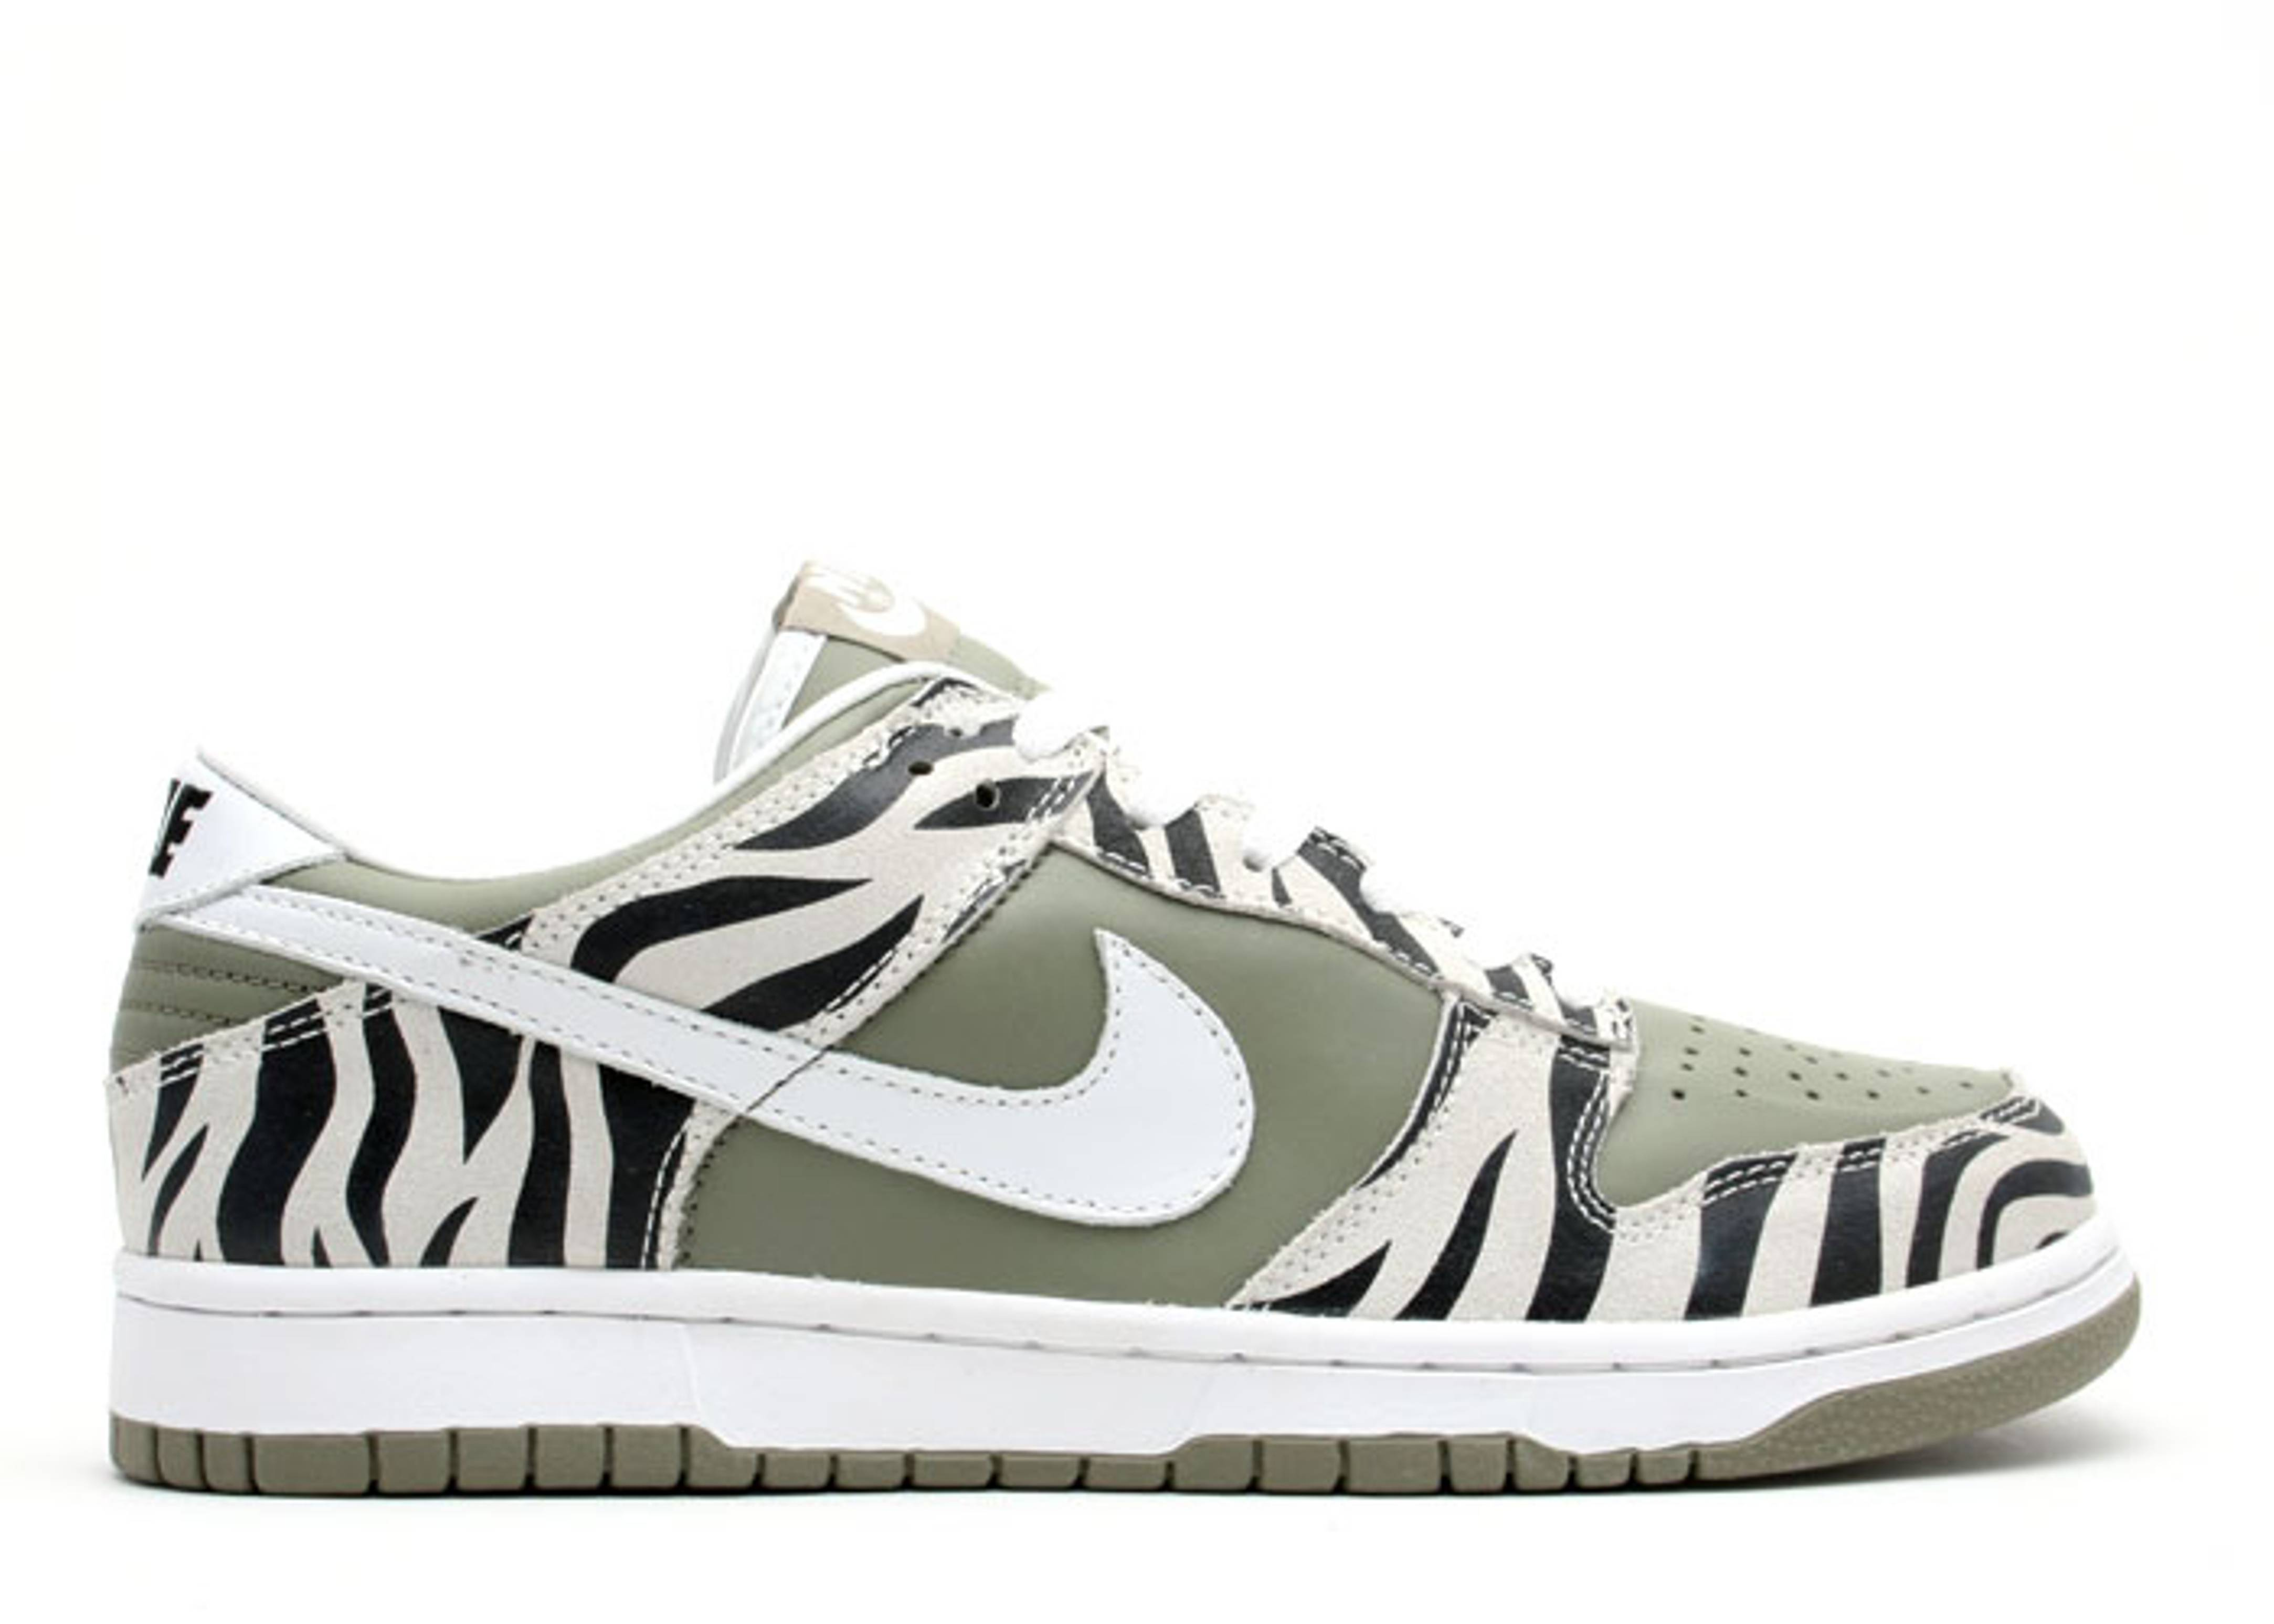 check out b0e32 a4c0d nike. dunk low